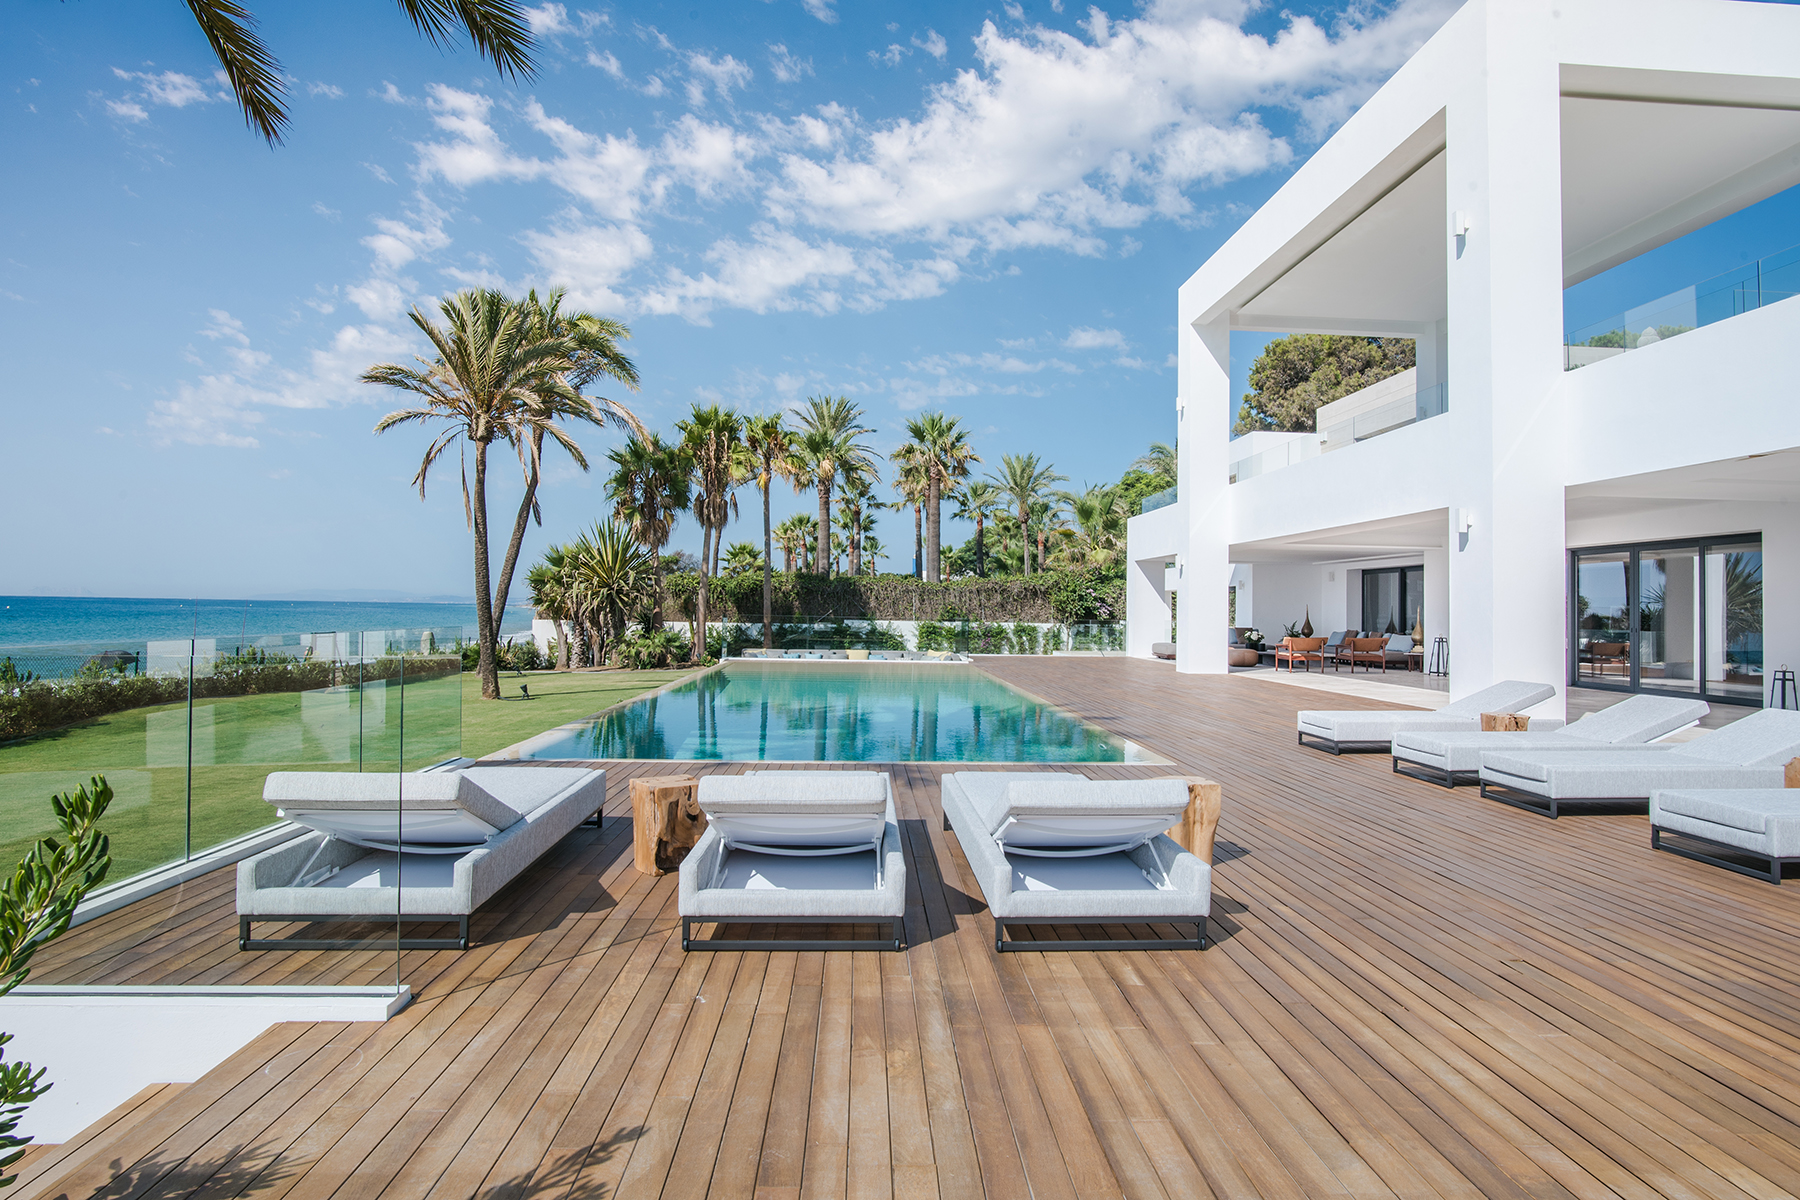 Maison unifamiliale pour l à vendre à A truly jewel of villa at beachfront New Golden Mile, Estepona, Costa Del Sol, 29680 Espagne